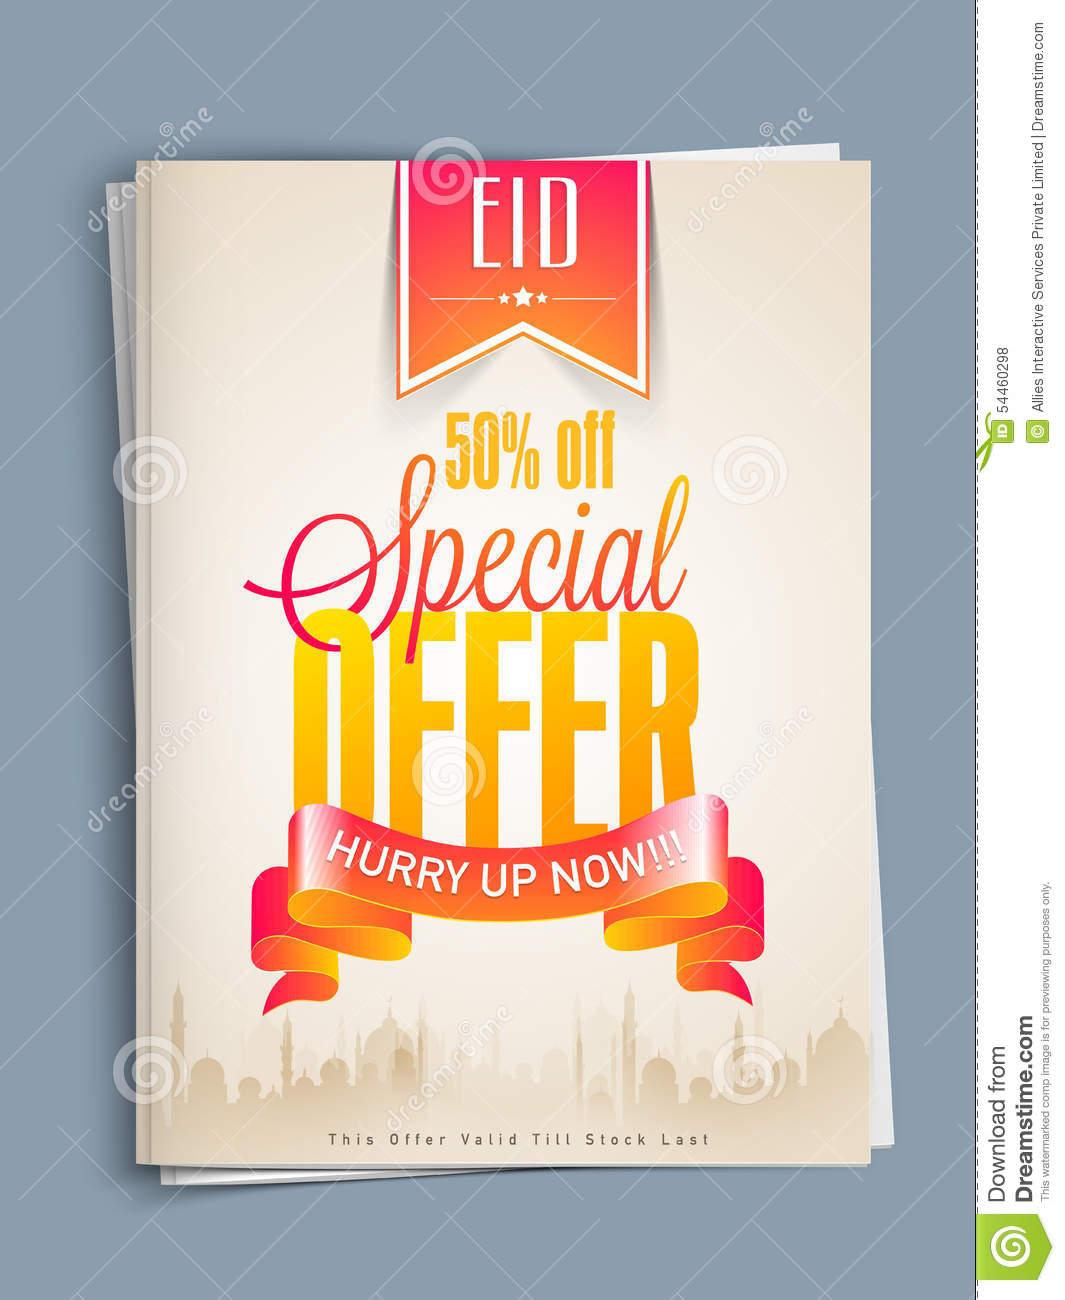 beautiful special offer template or flyer for eid celebration beautiful special offer template or flyer for eid celebration